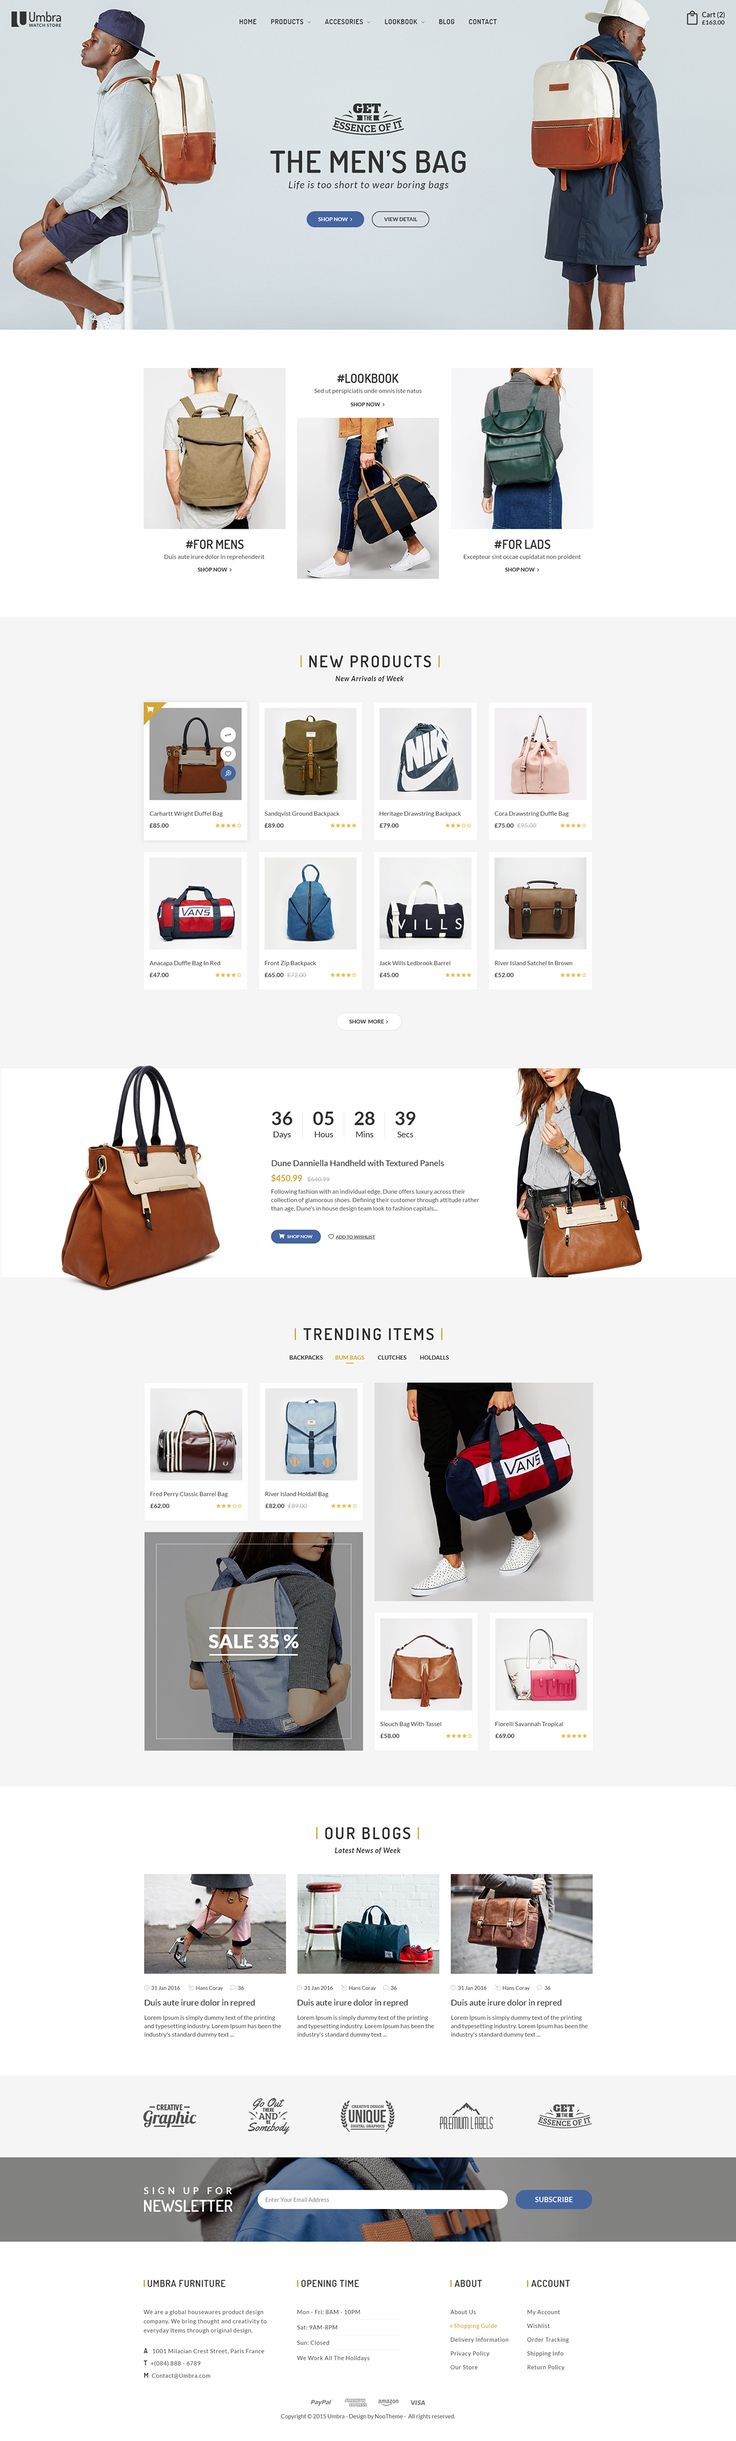 Umbra - Multi Concept eCommerce PSD Template on Behance